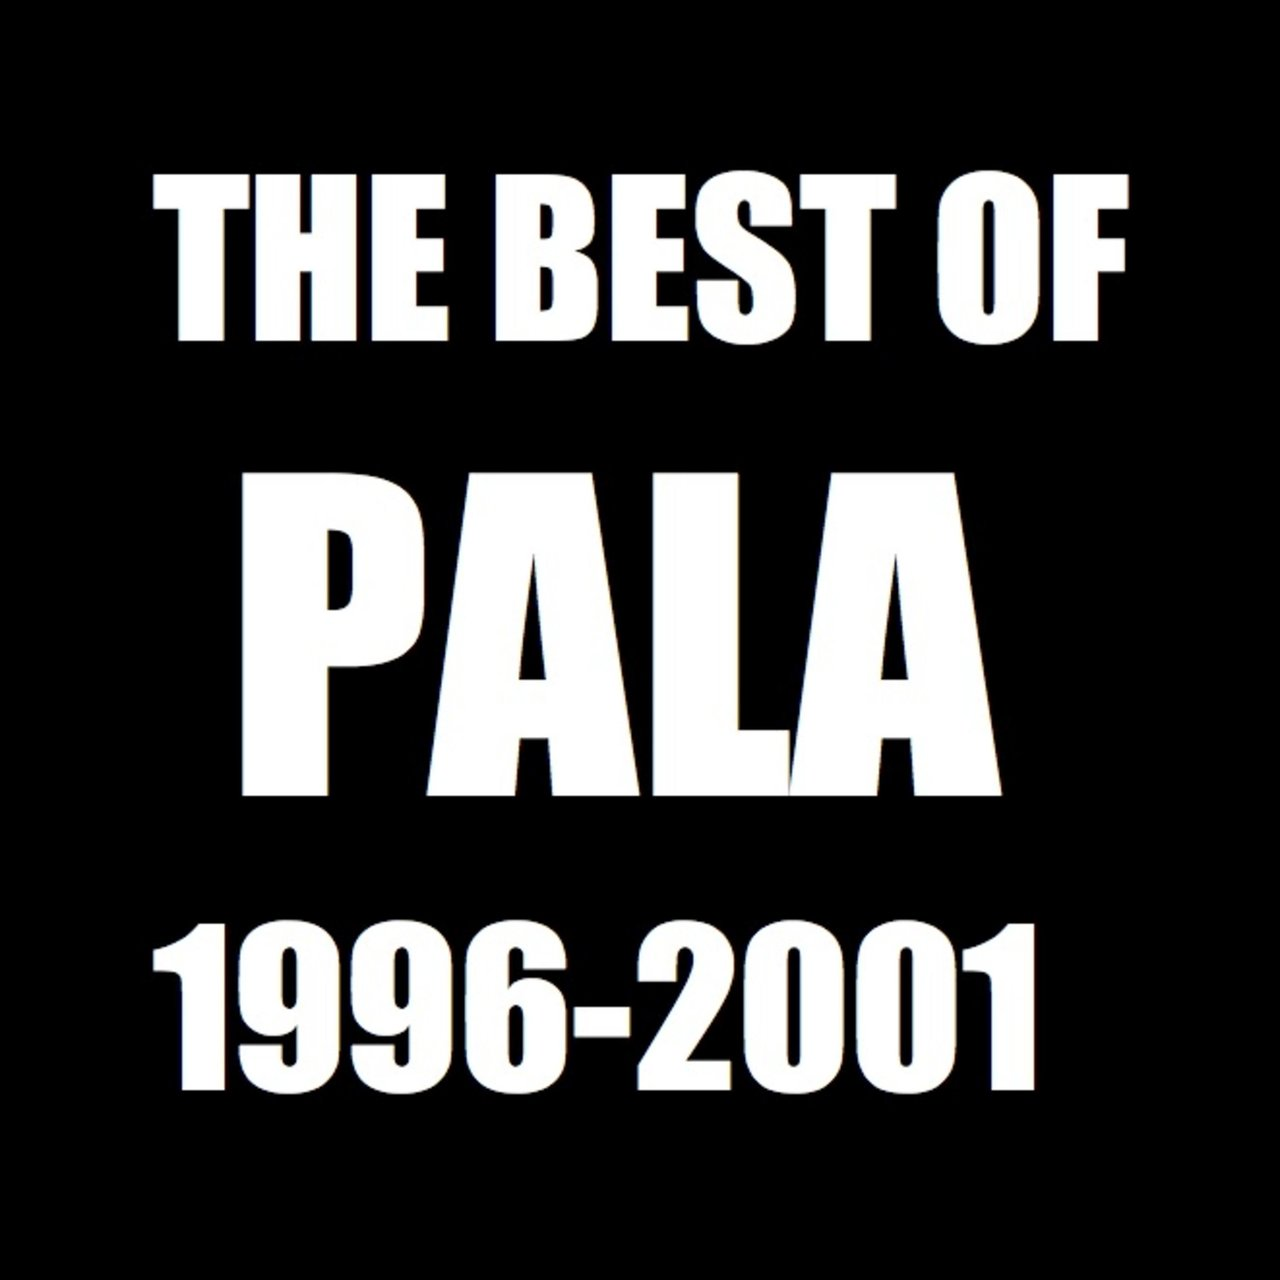 The Best of Pala: 1996 to 2001